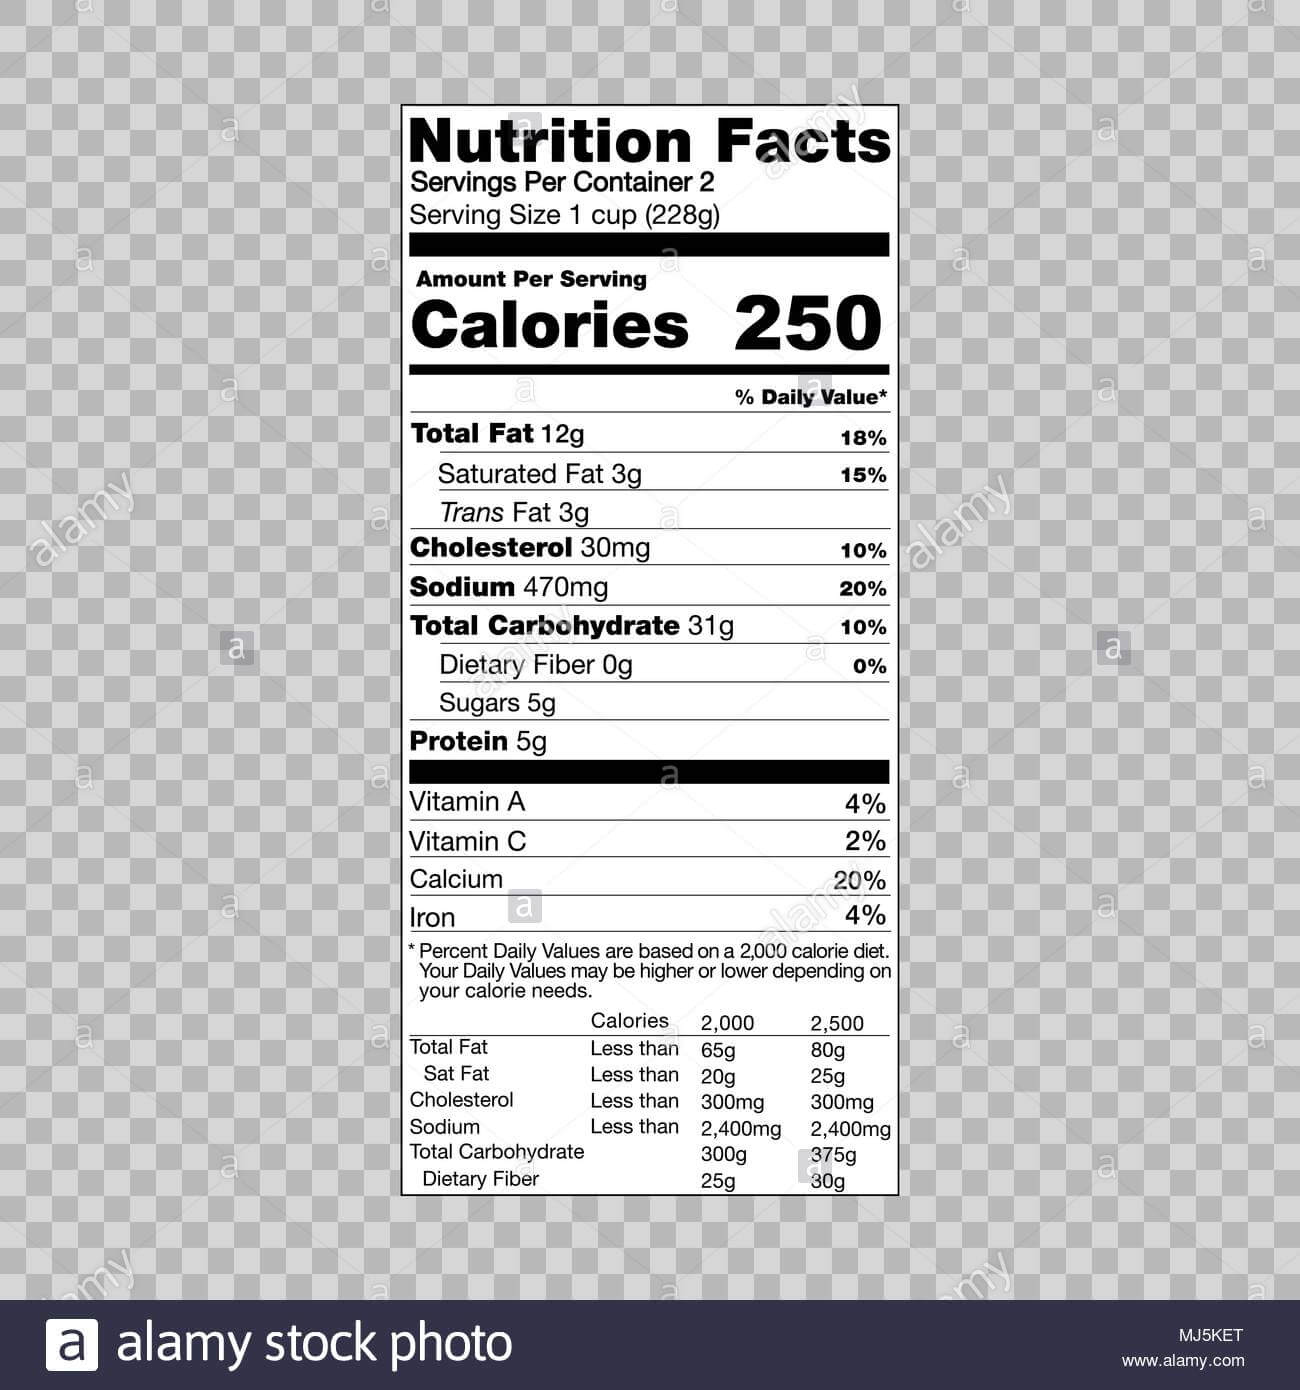 Nutrition Facts Information Template For Food Label Stock Inside Blank Food Label Template